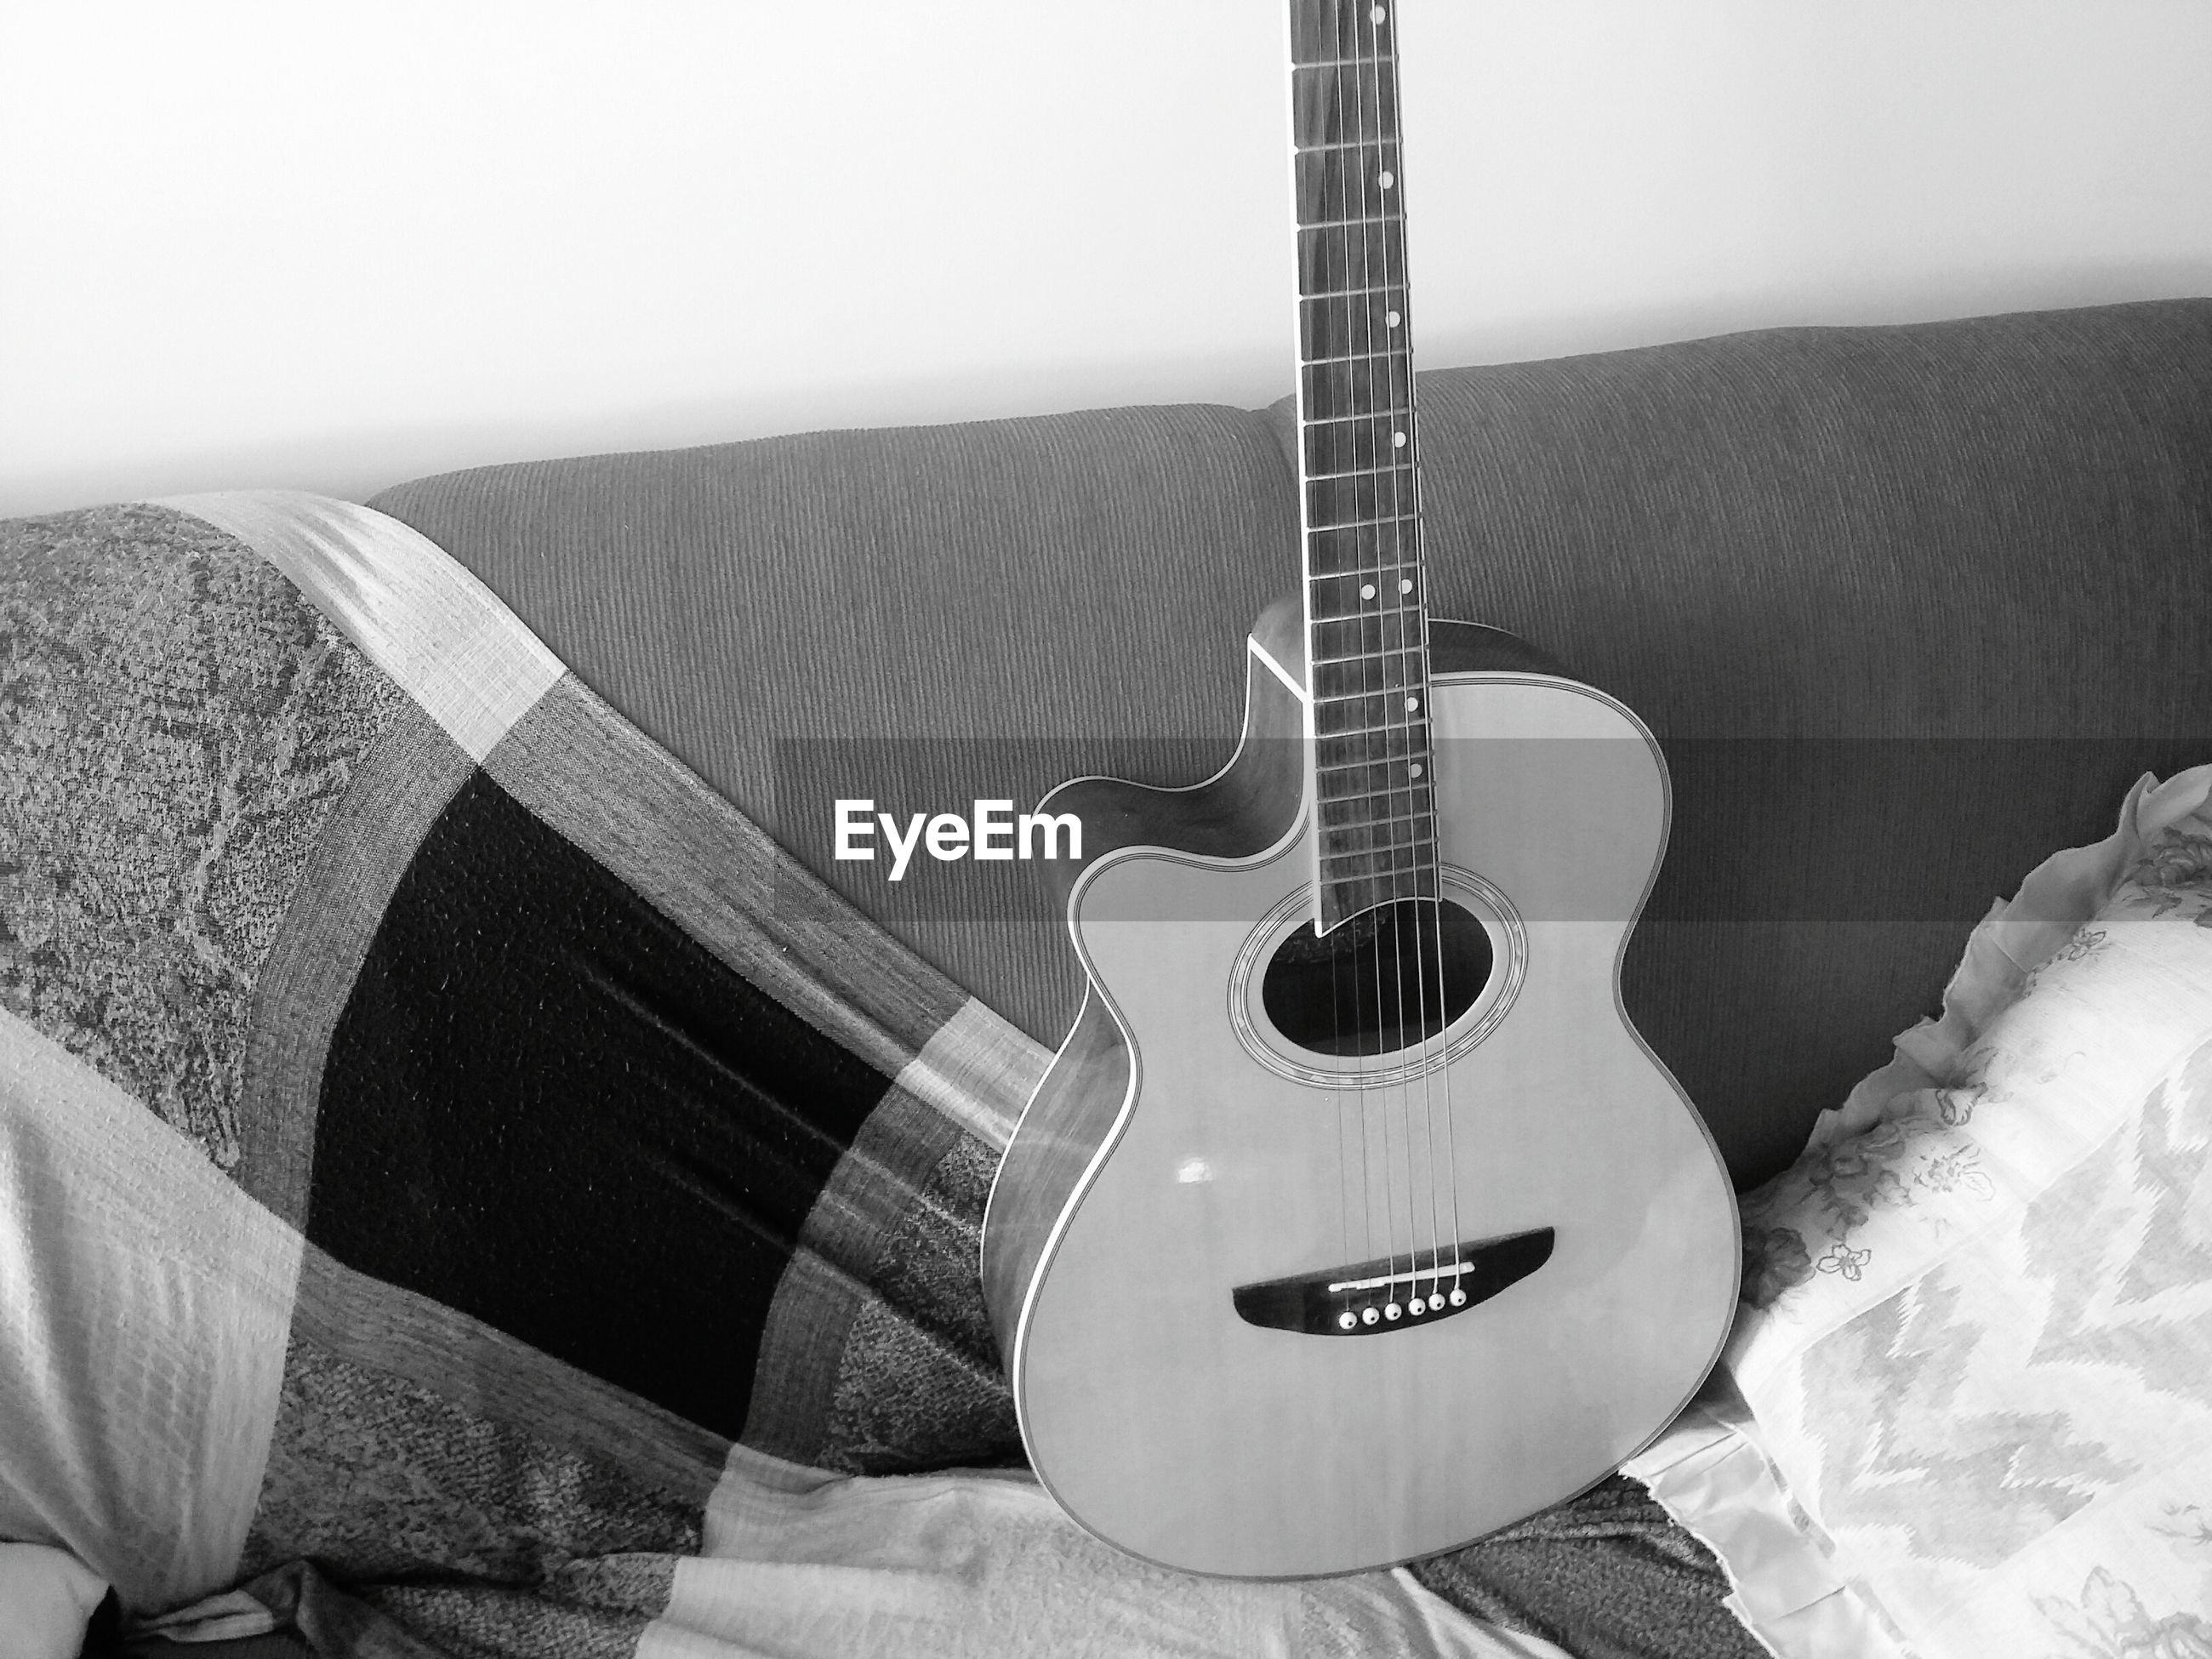 musical instrument, technology, guitar, music, arts culture and entertainment, communication, indoors, metal, musical equipment, no people, musical instrument string, close-up, high angle view, day, equipment, still life, old-fashioned, hanging, protection, part of